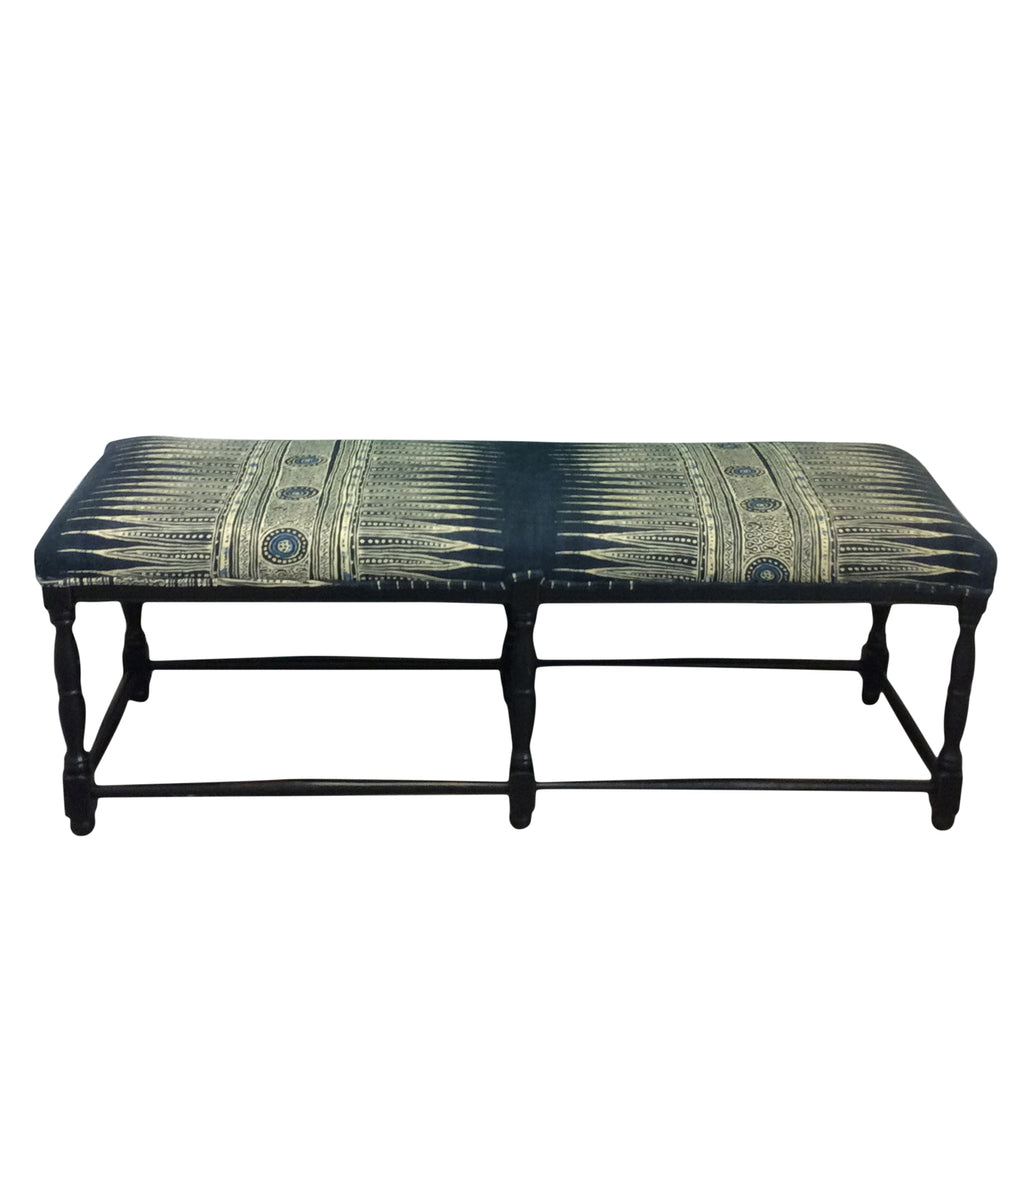 British Colonial Bench Indian Zag Indigo Fabric. Lilly and Co.